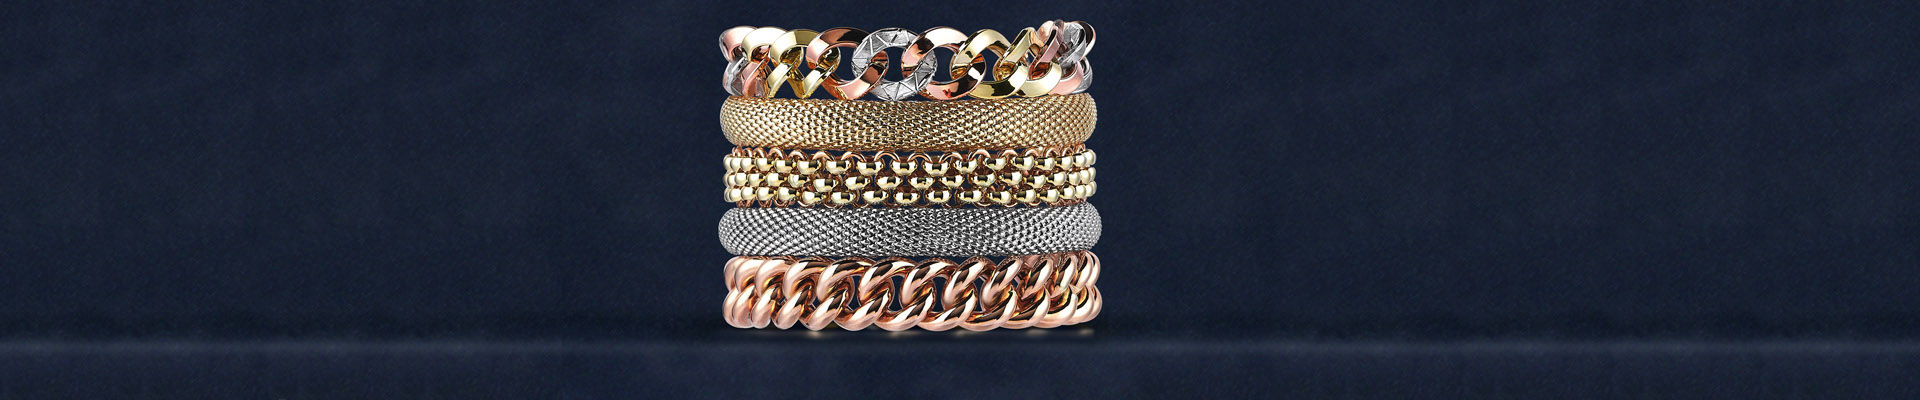 ETERNA COLLECTION